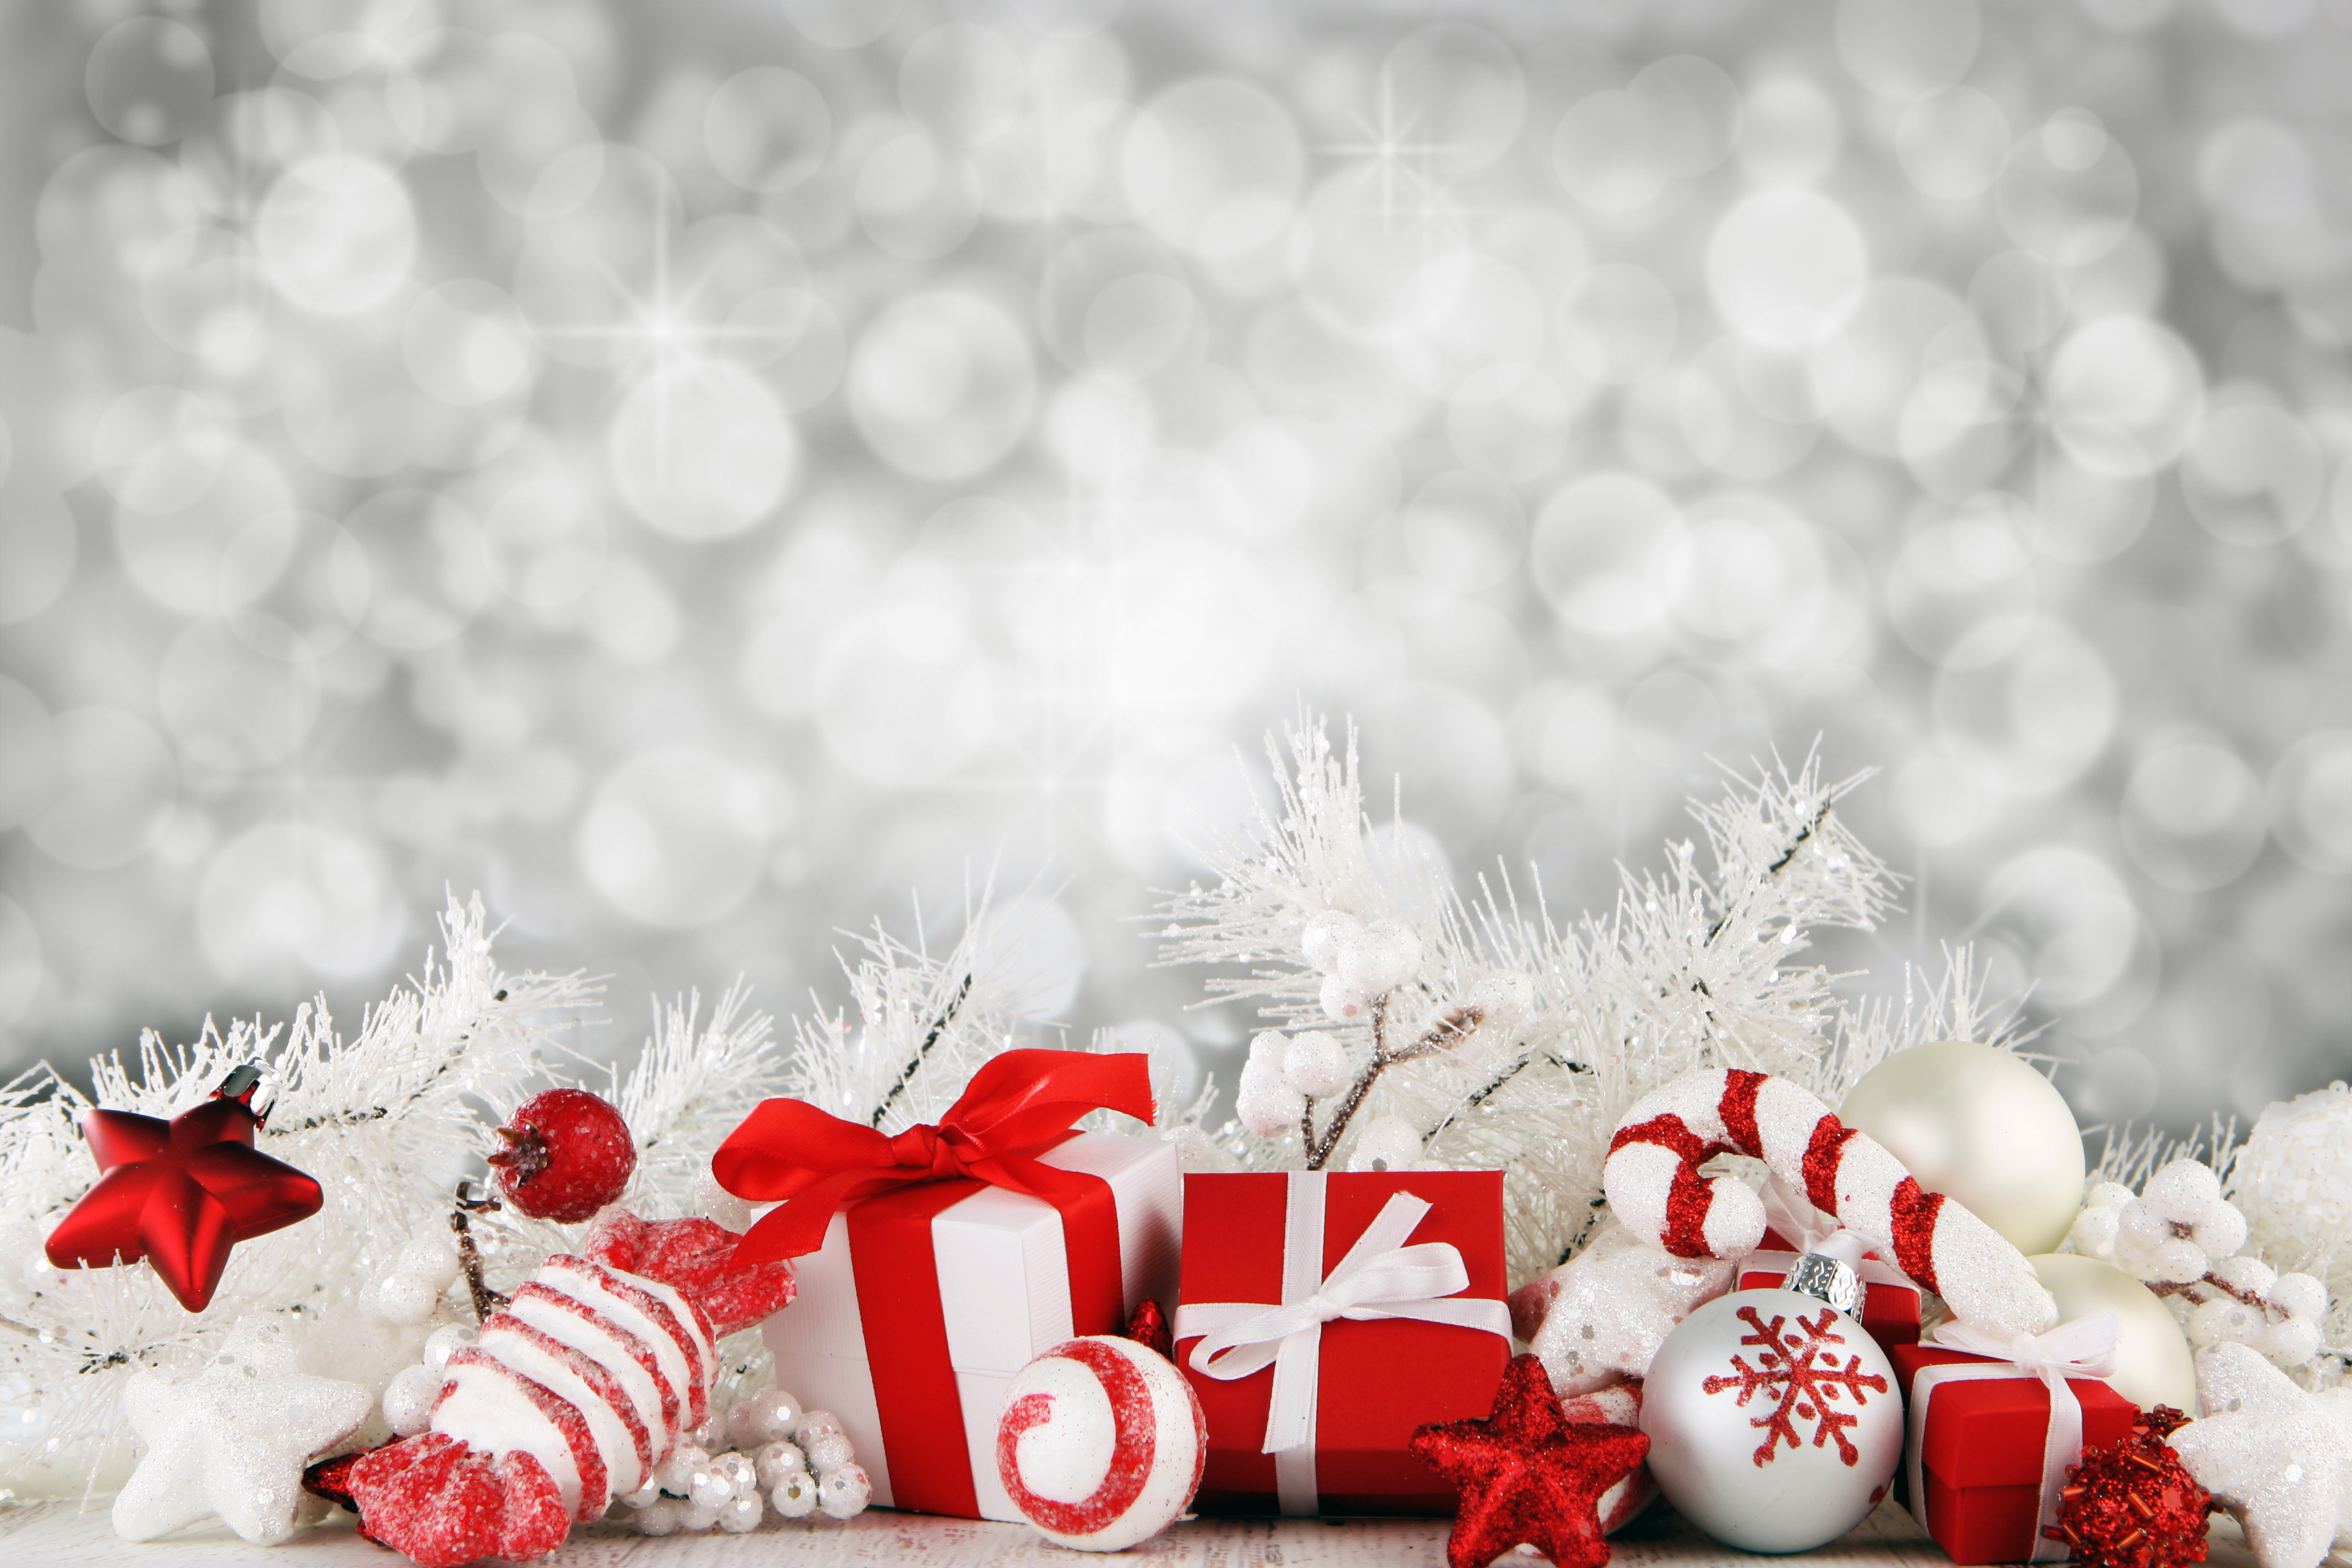 Christmas Background   Clip Art Library 3888x2592